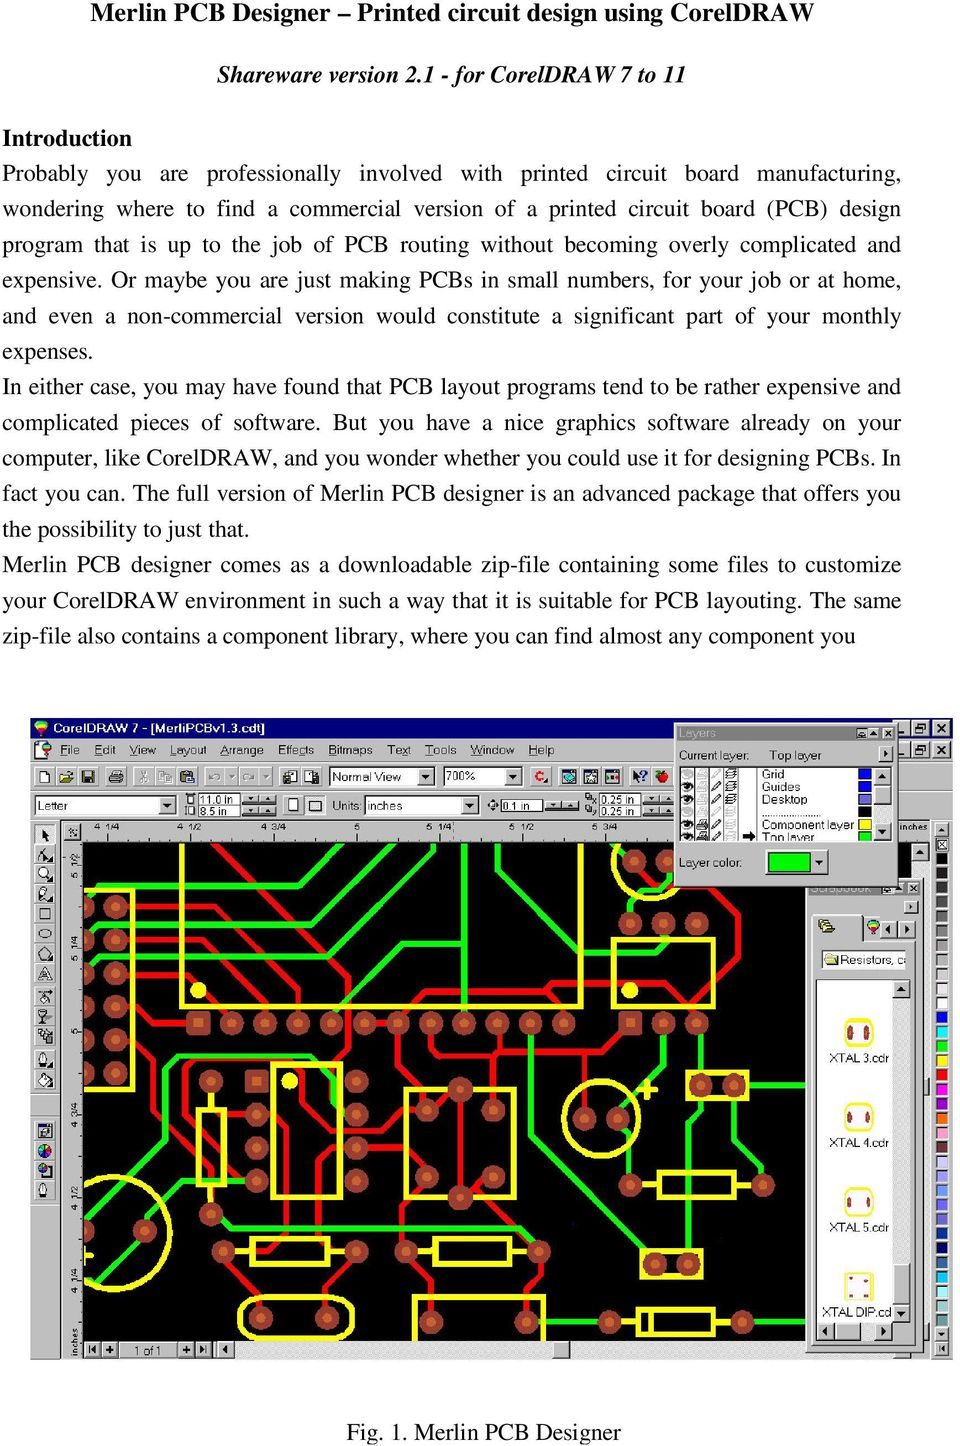 Nice Home Based Pcb Design Jobs Pictures Layout Camsoftware Circuitcam V7 Merlin Designer Printed Circuit Using Coreldraw Pdf